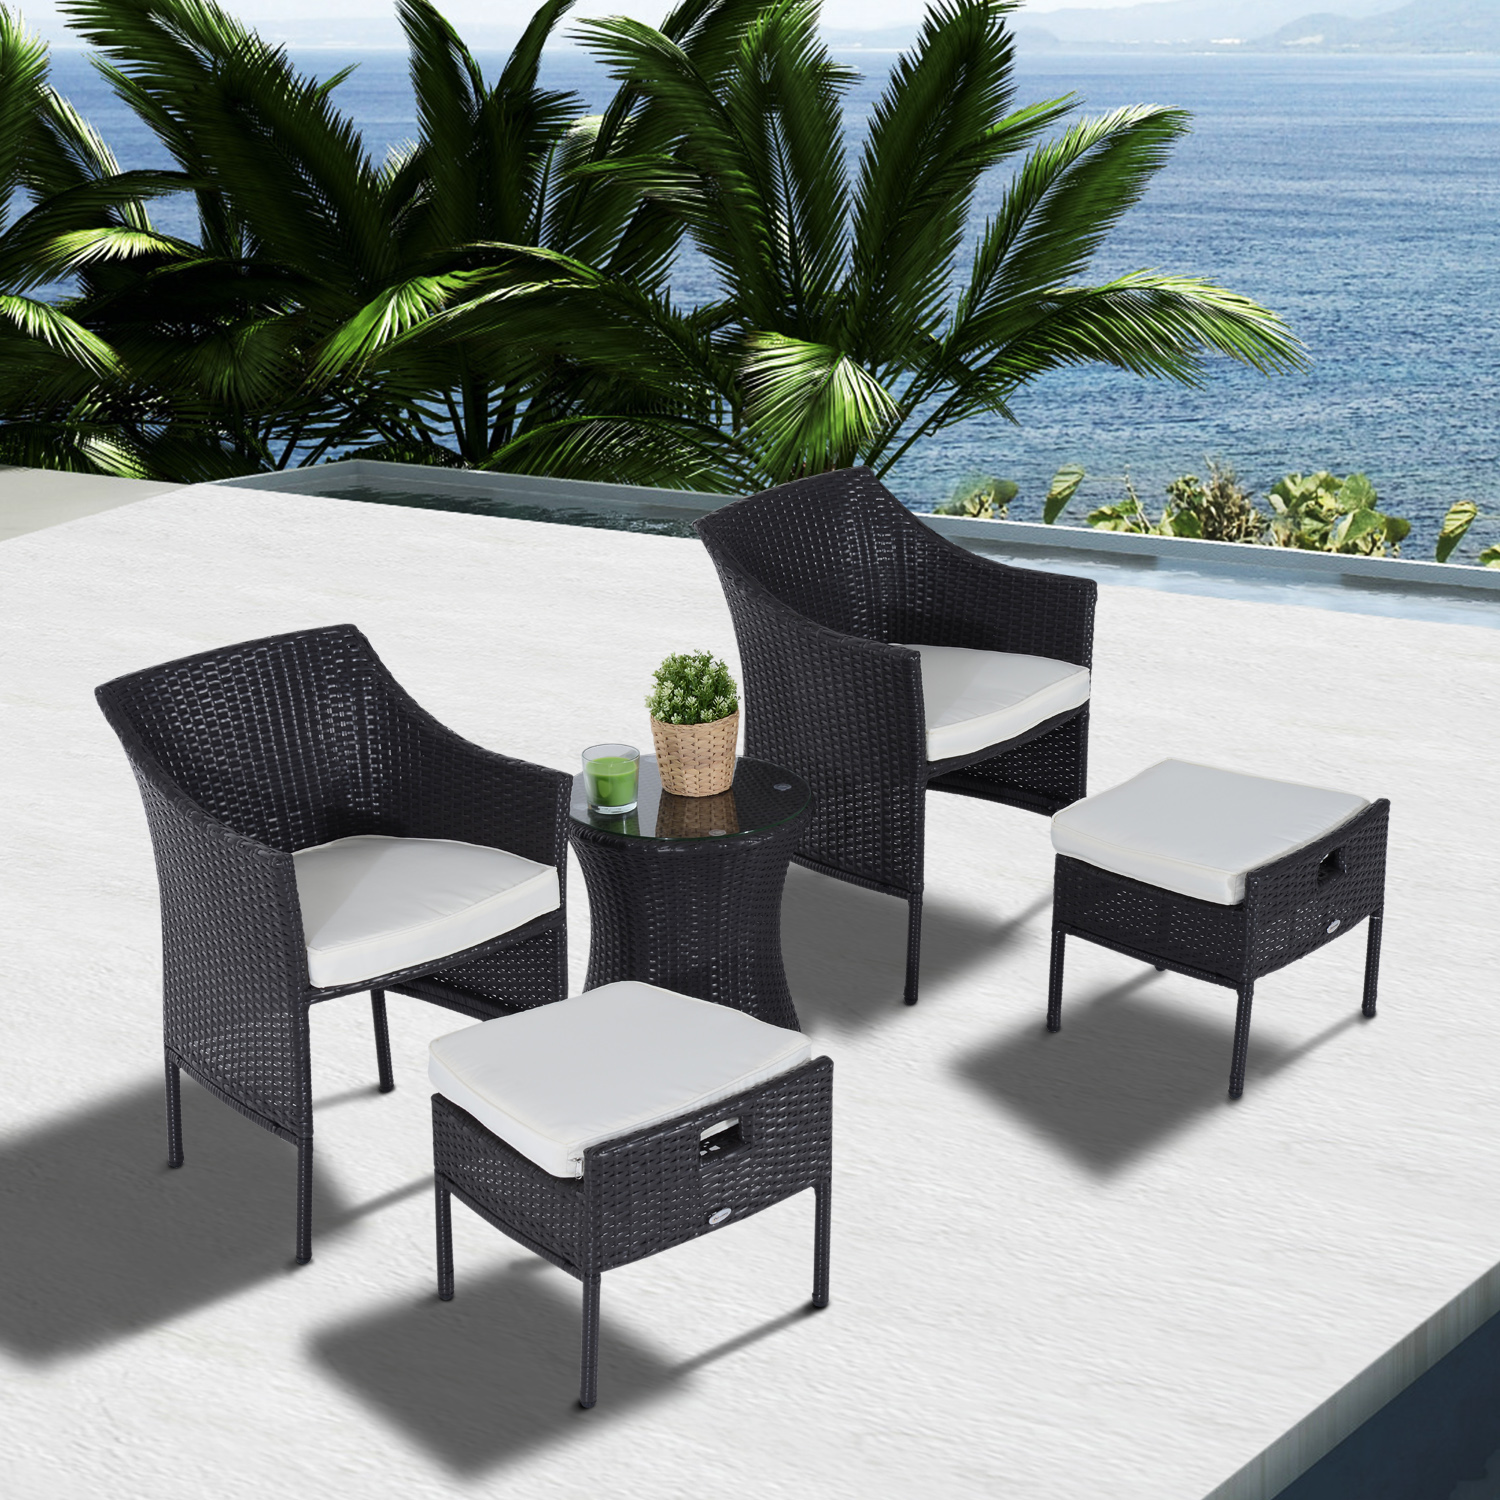 Cad 649 99 Outsunny 7pcs Outdoor Rattan Wicker Sofa Garden Sectional Couch Patio Furniture Set Chairs And Dining Table With Cushion Black Chair